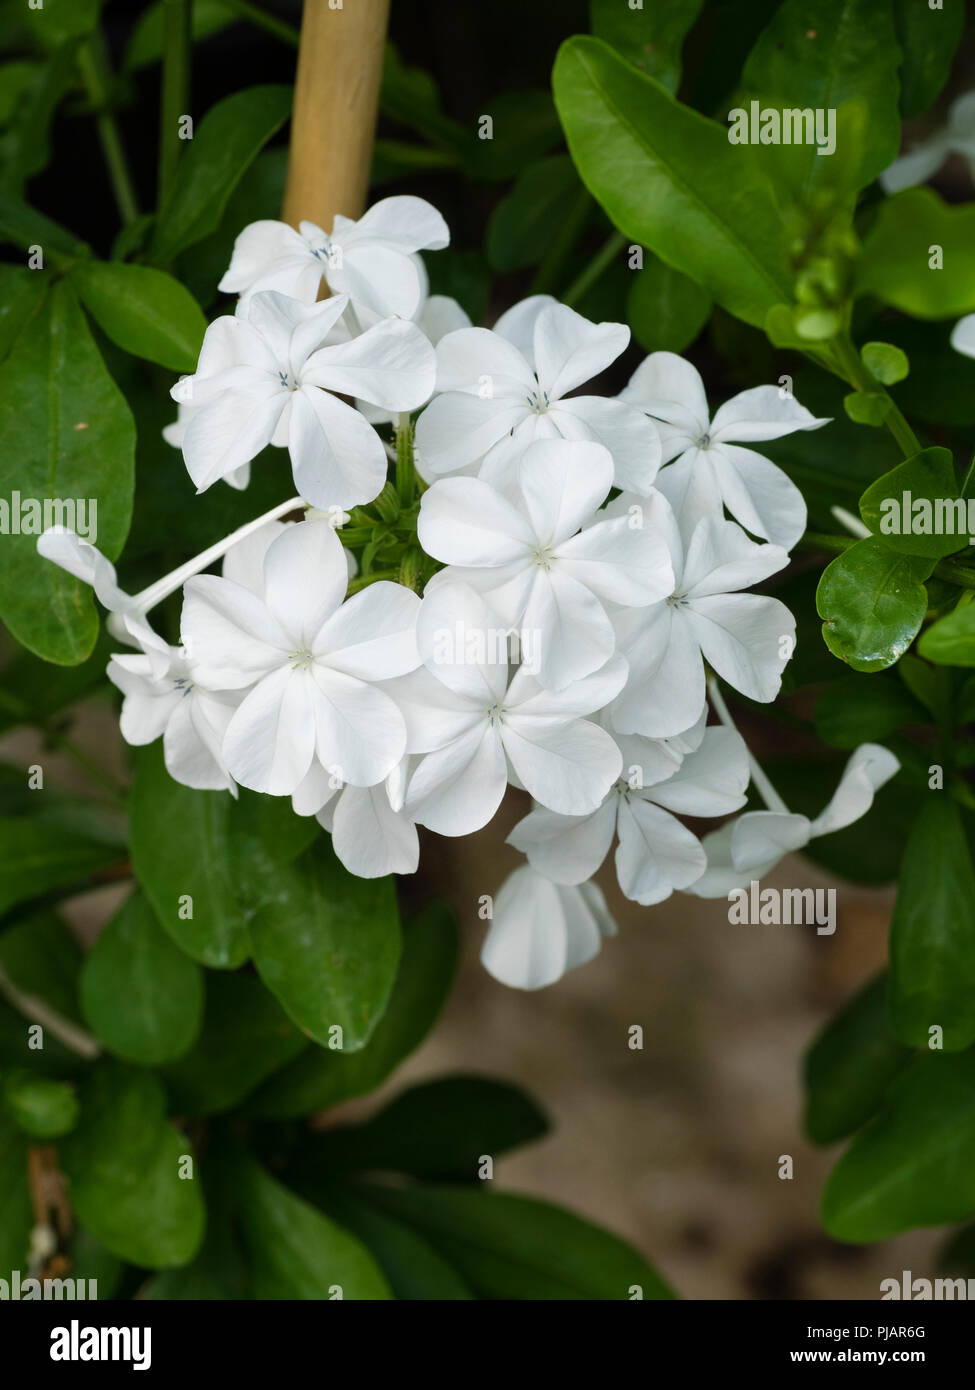 A cluster of flowers stock photos a cluster of flowers stock white flowers in a tight cluster of the tender evergreen scrambler plumbago capensis f izmirmasajfo